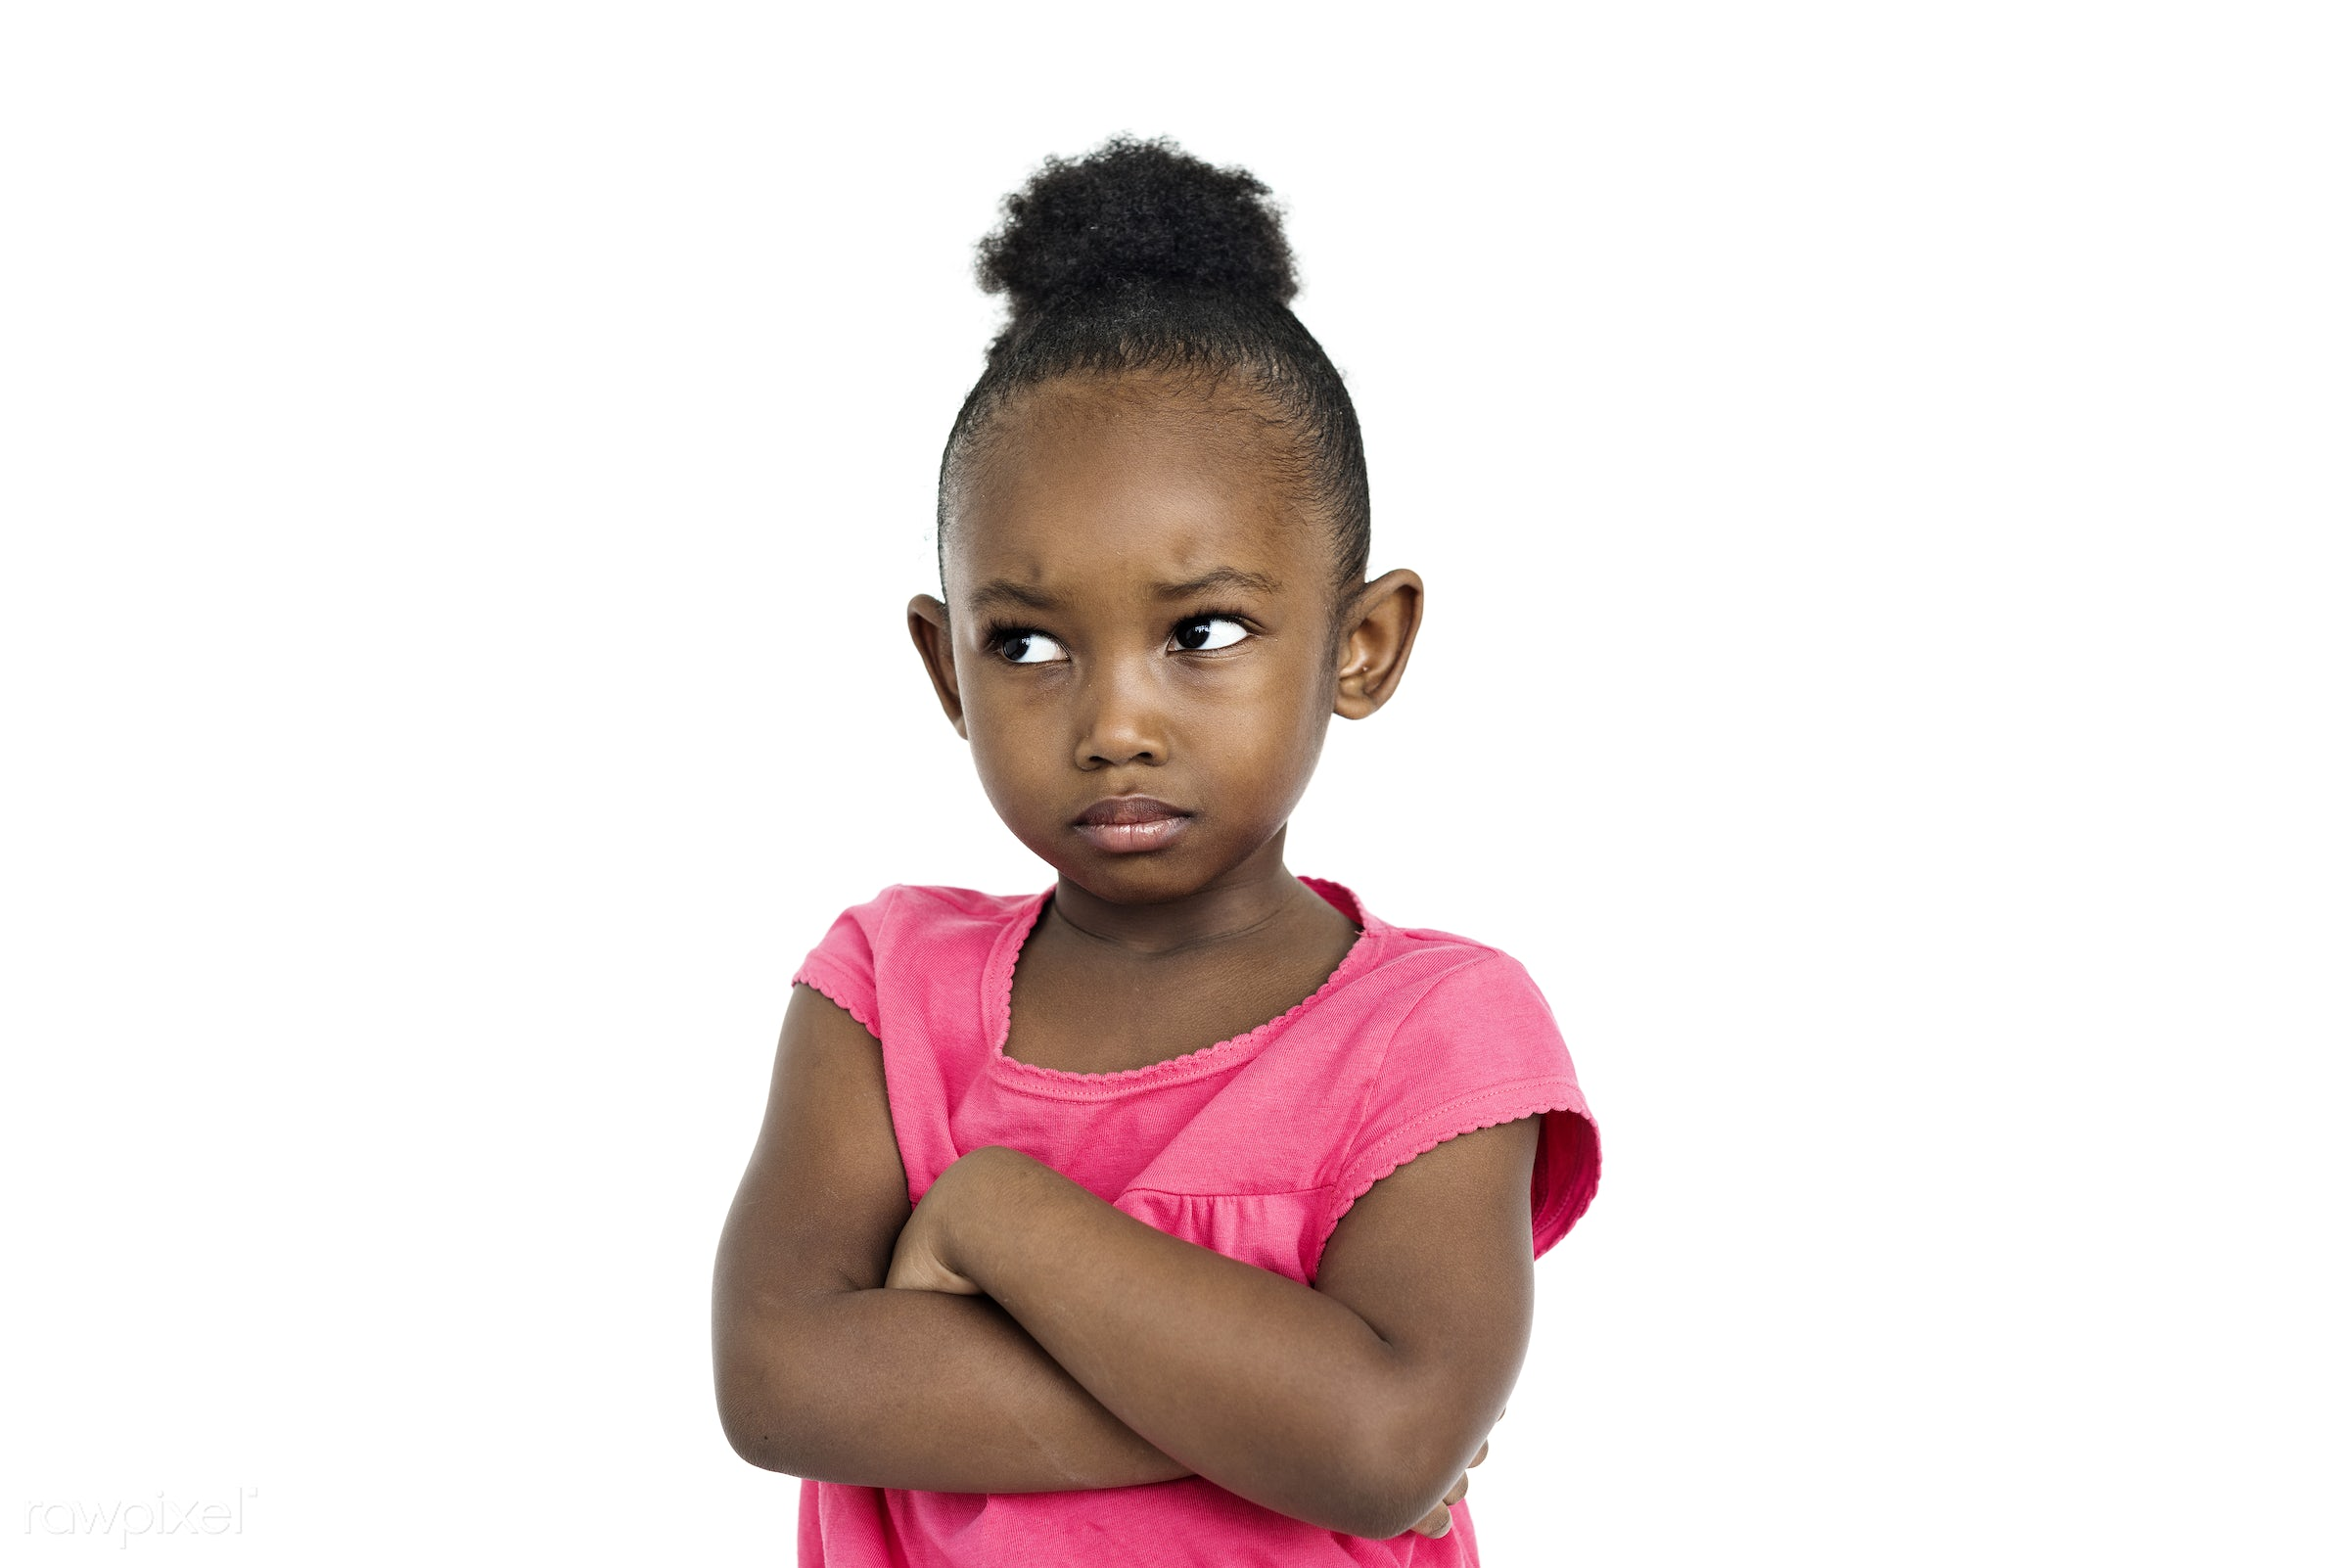 expression, studio, face, person, african, isolated on white, daughter, angry, children, kid, child, girl, upset, casual,...